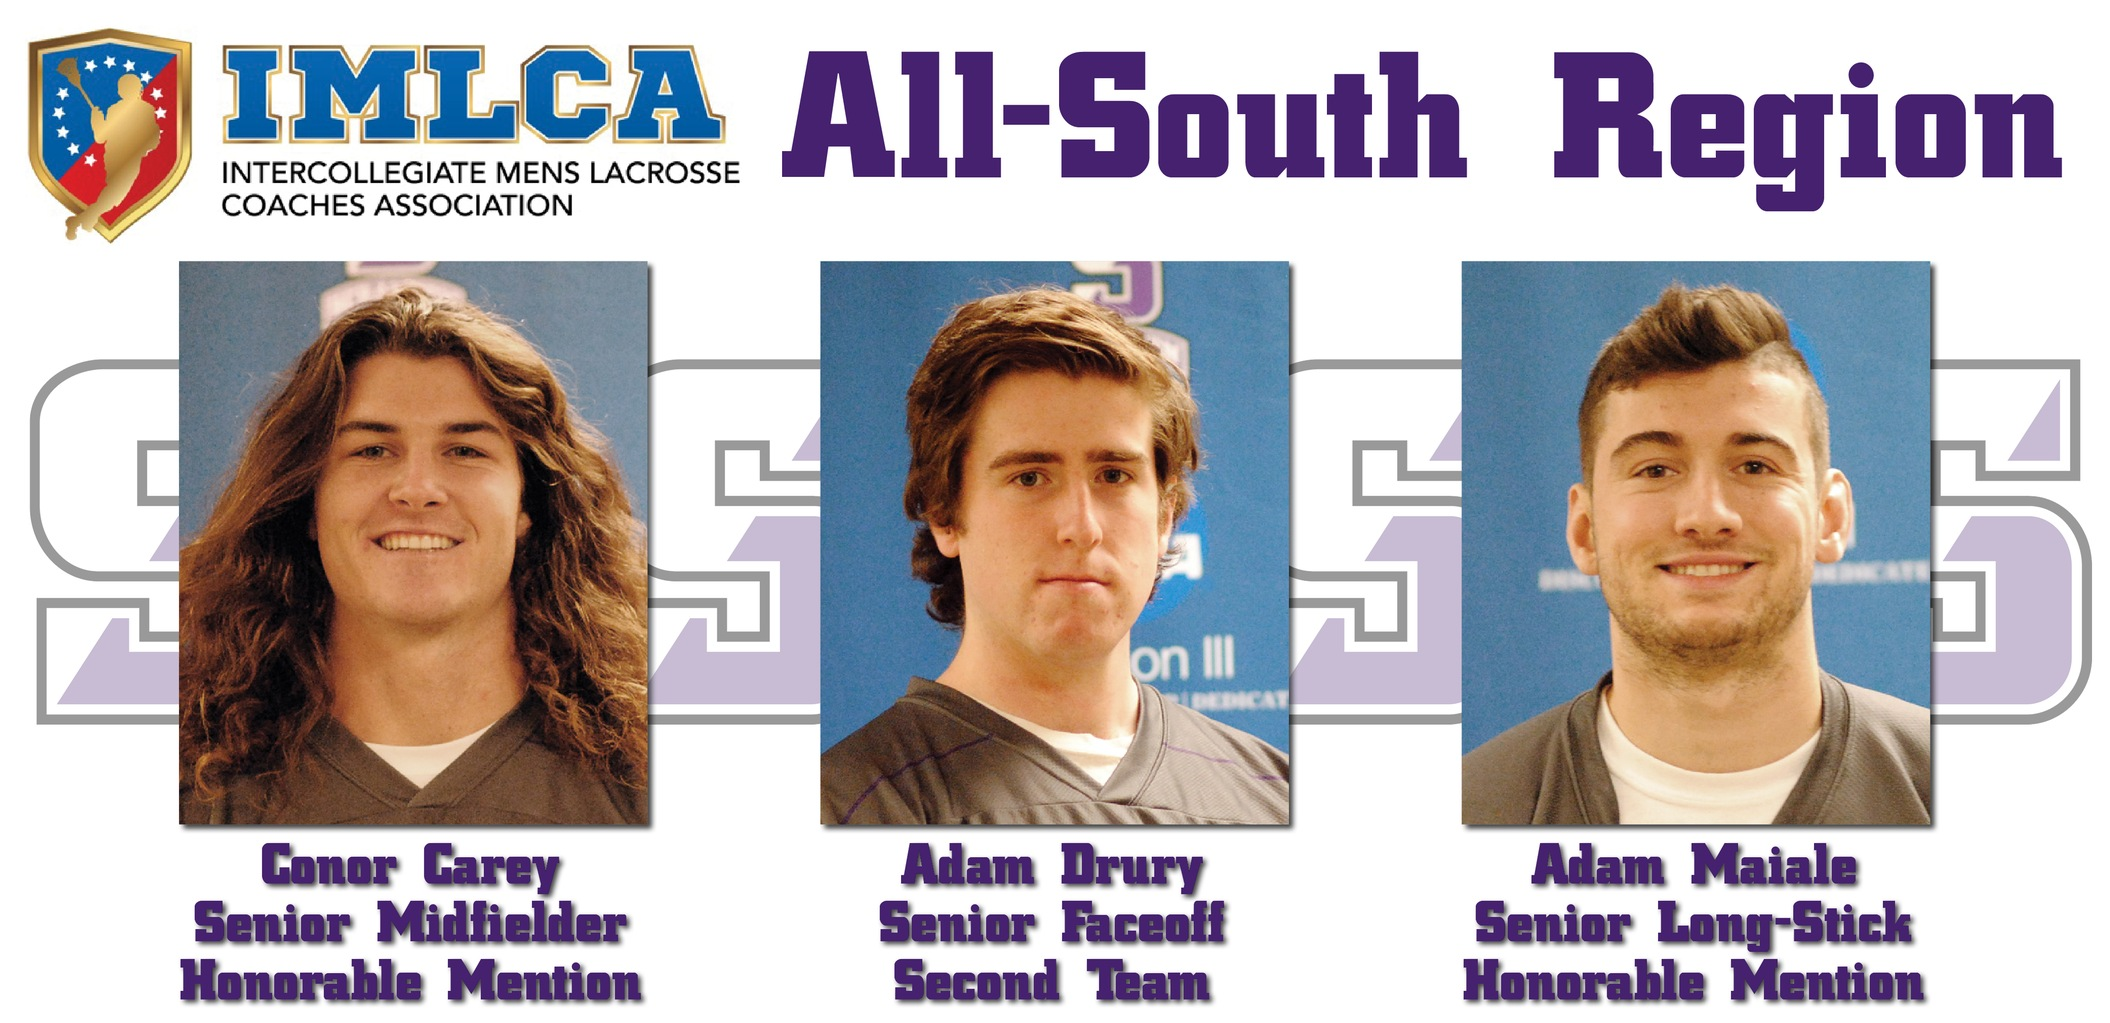 Men's Lacrosse Trio Earns All-South Region Honors From IMLCA